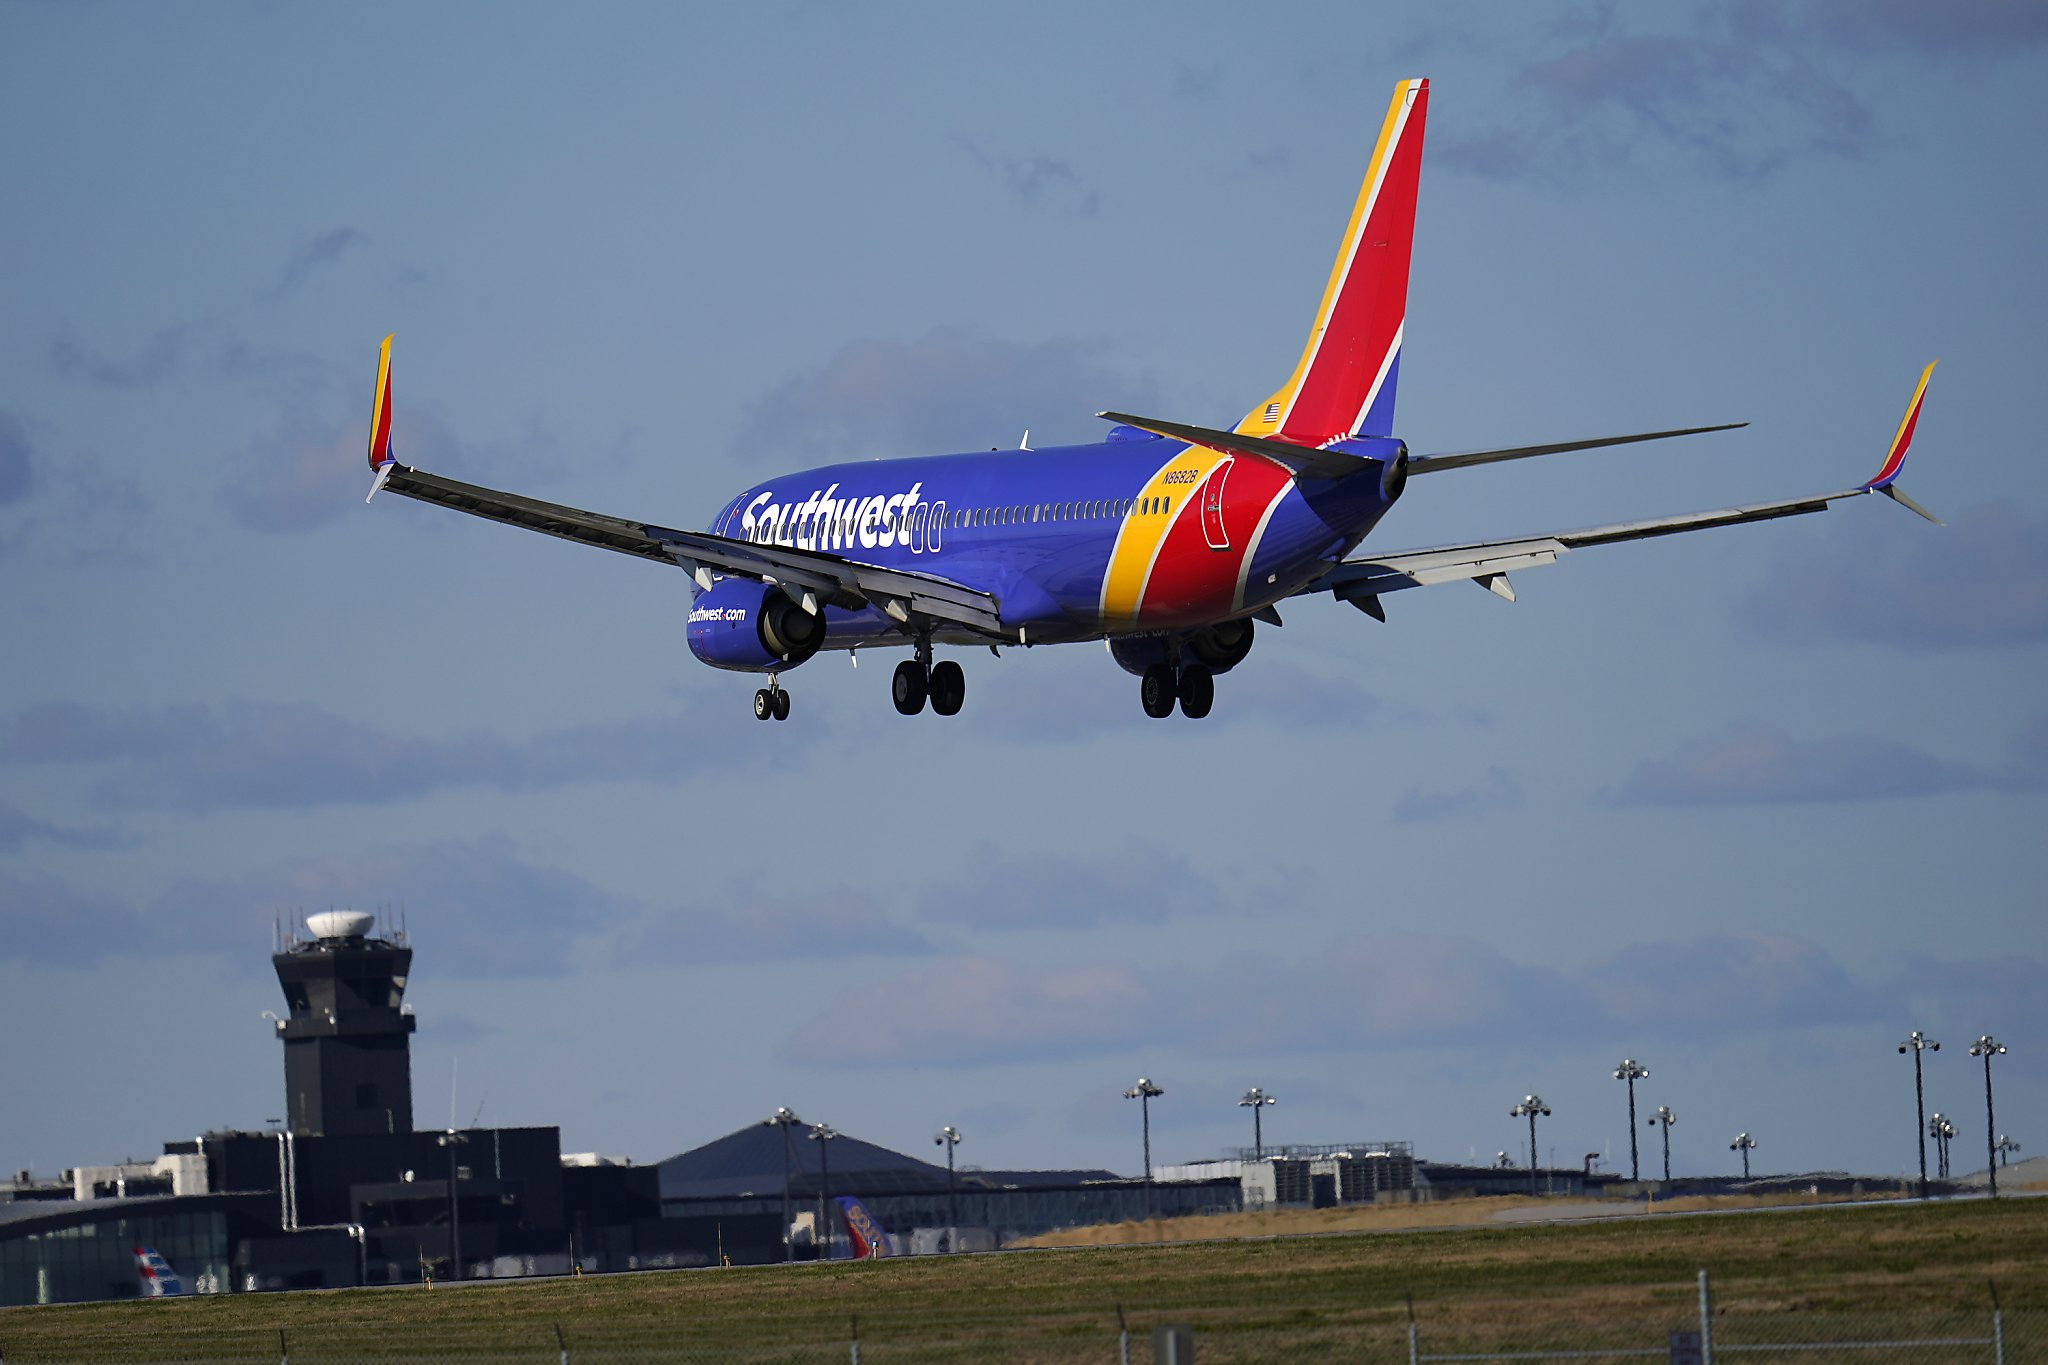 Southwest Airlines tempts travelers with $29 fare sale